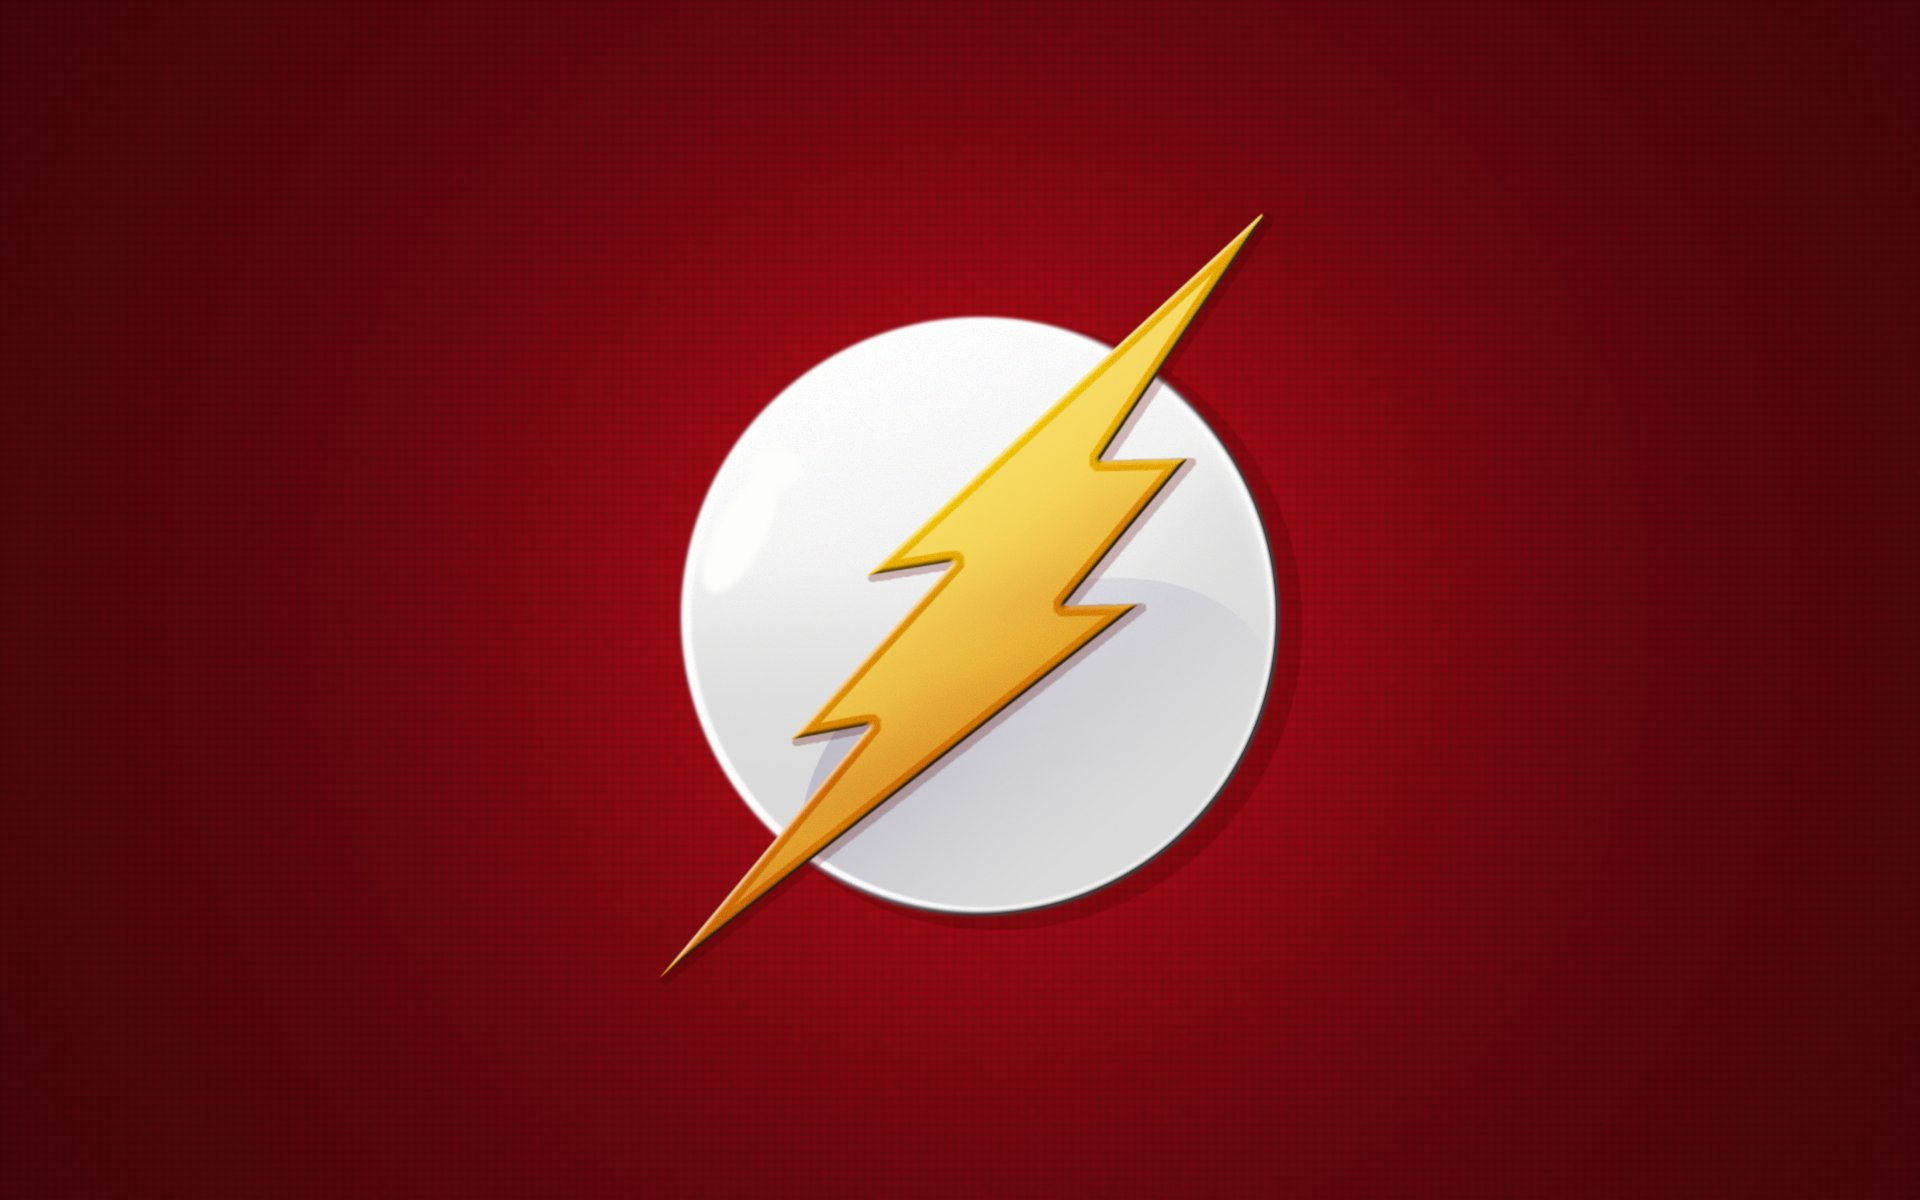 the flash logo wallpaper #5